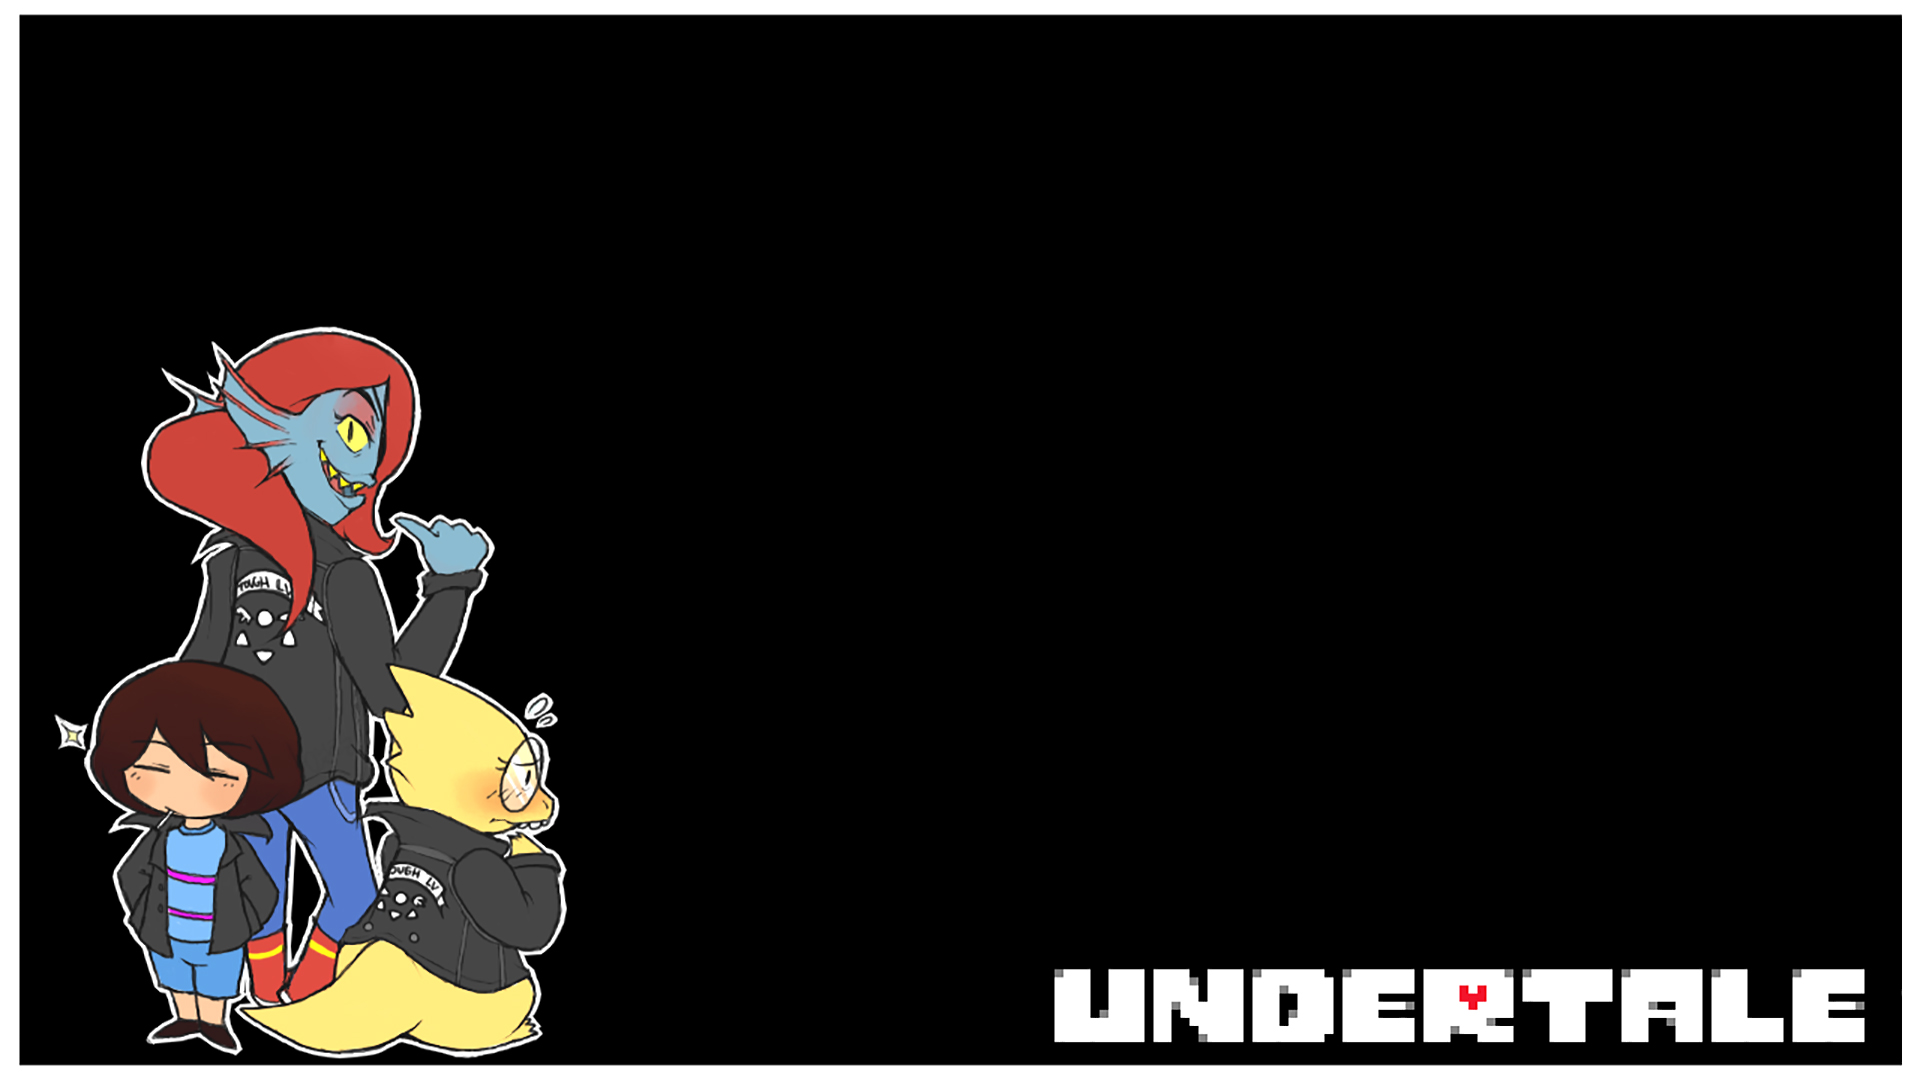 1920x1080 - Undertale Wallpaper 1920x1080 44